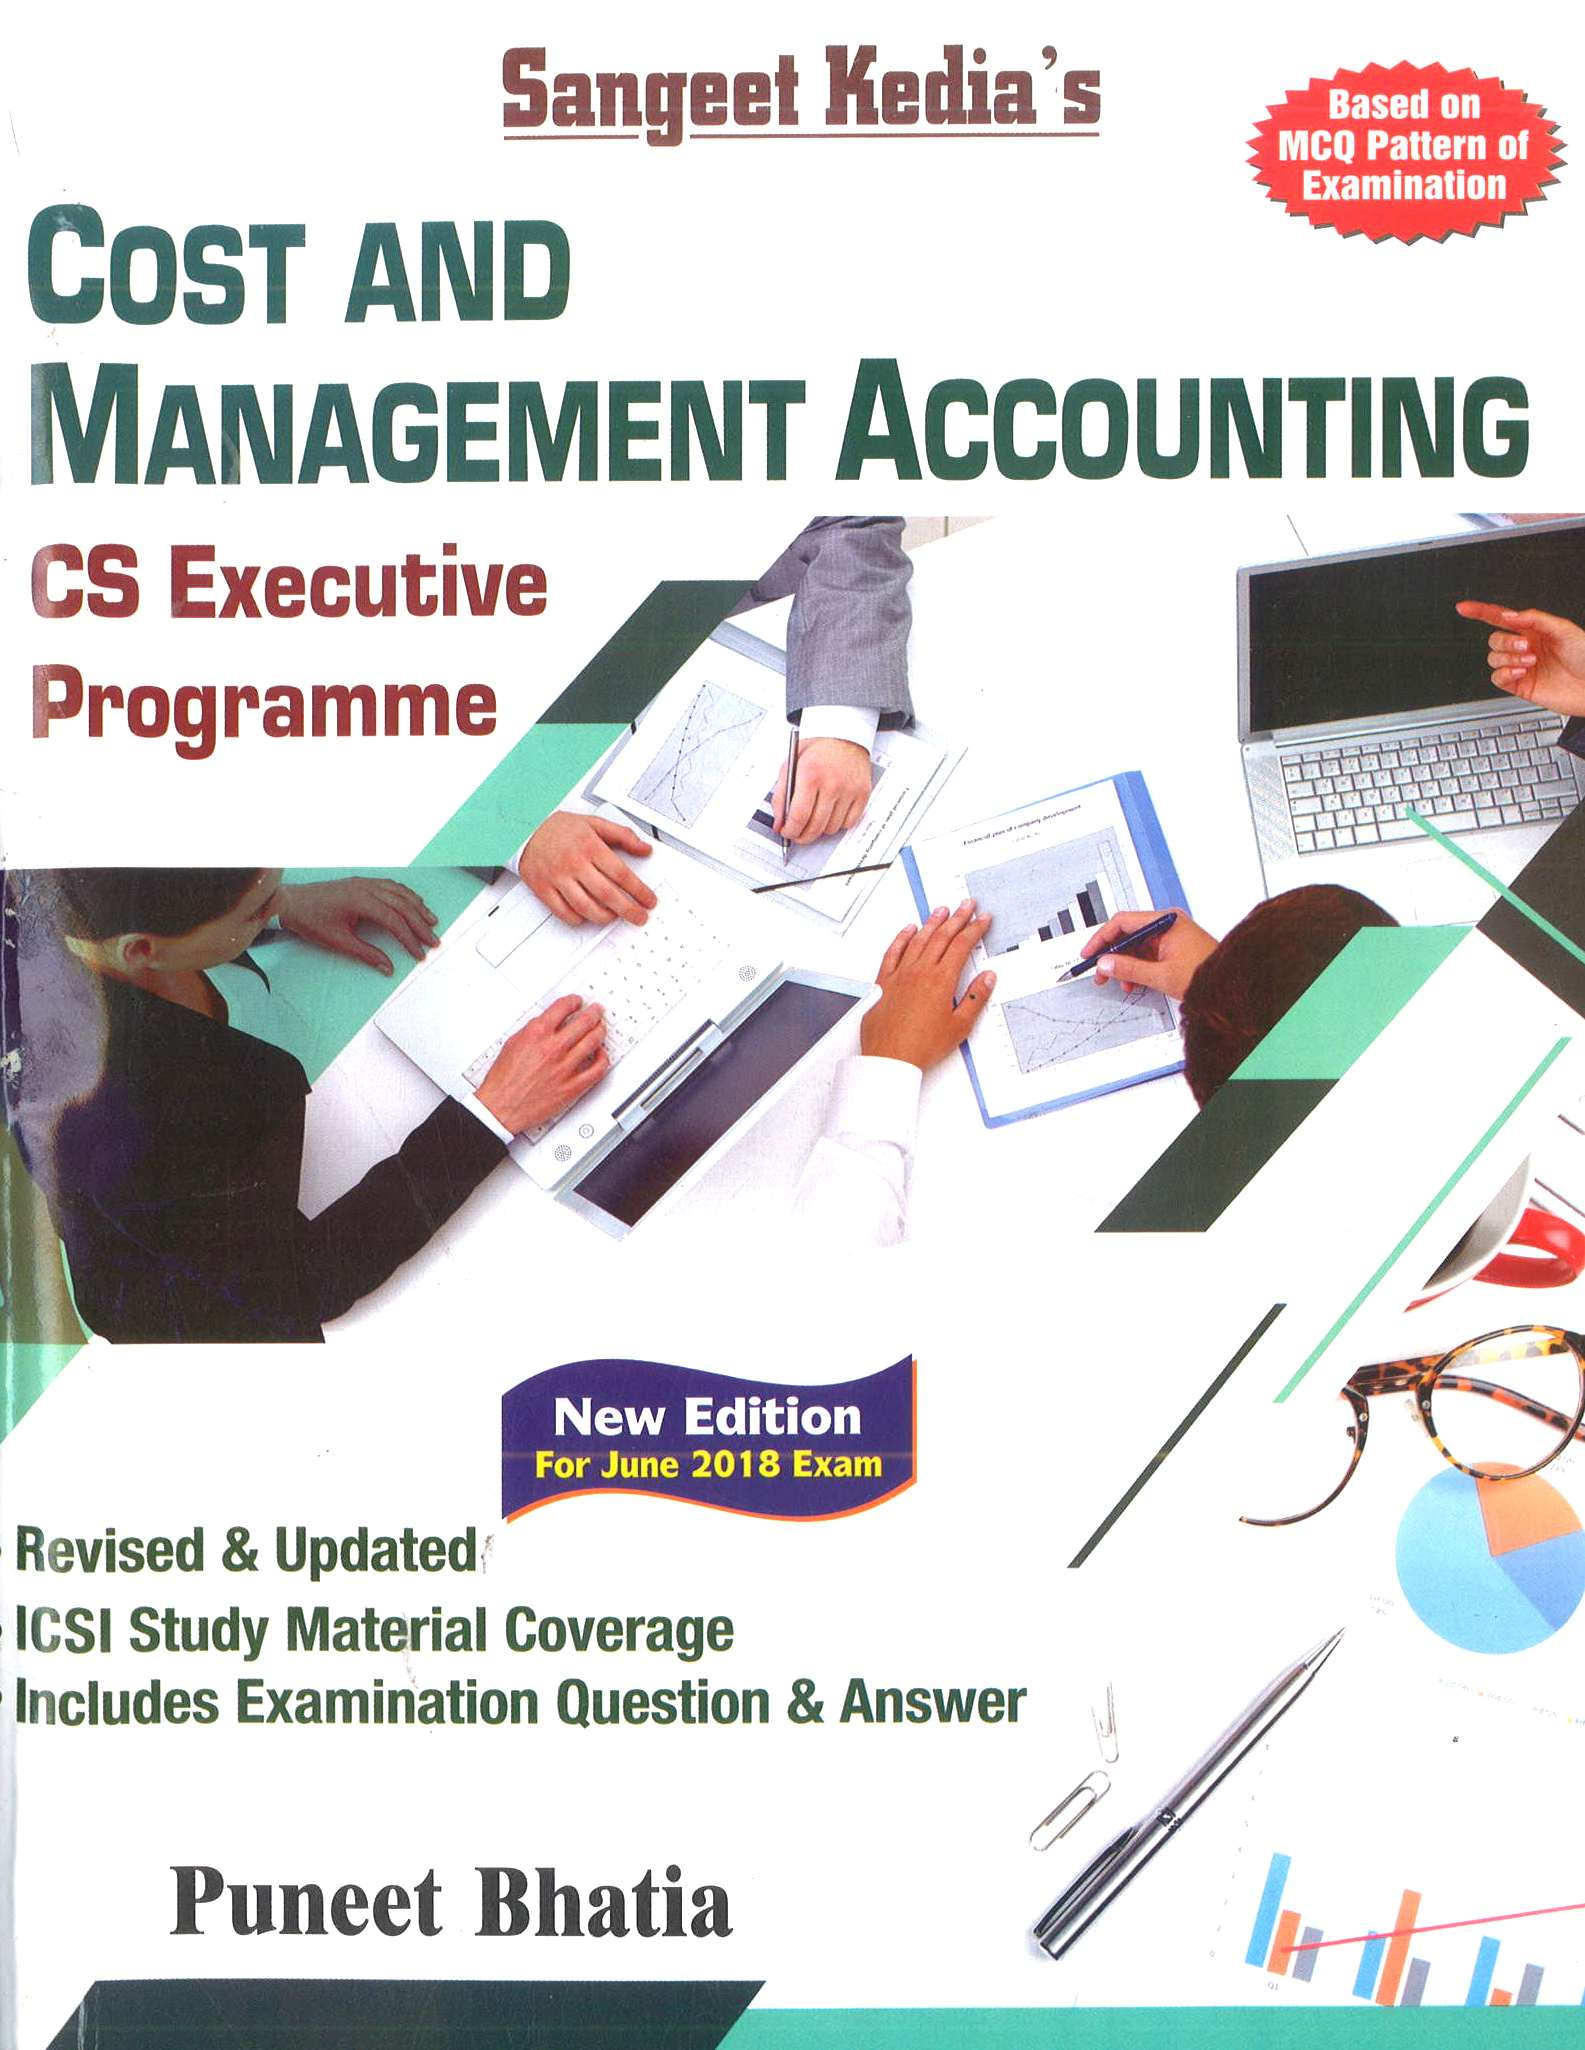 Sangeet Kedia Cost & Management Accounting for CS Executive By Puneet Bhatia Applicable For June 2018 Exam(Pooja Law House Publishing) Edition 14th, 2018